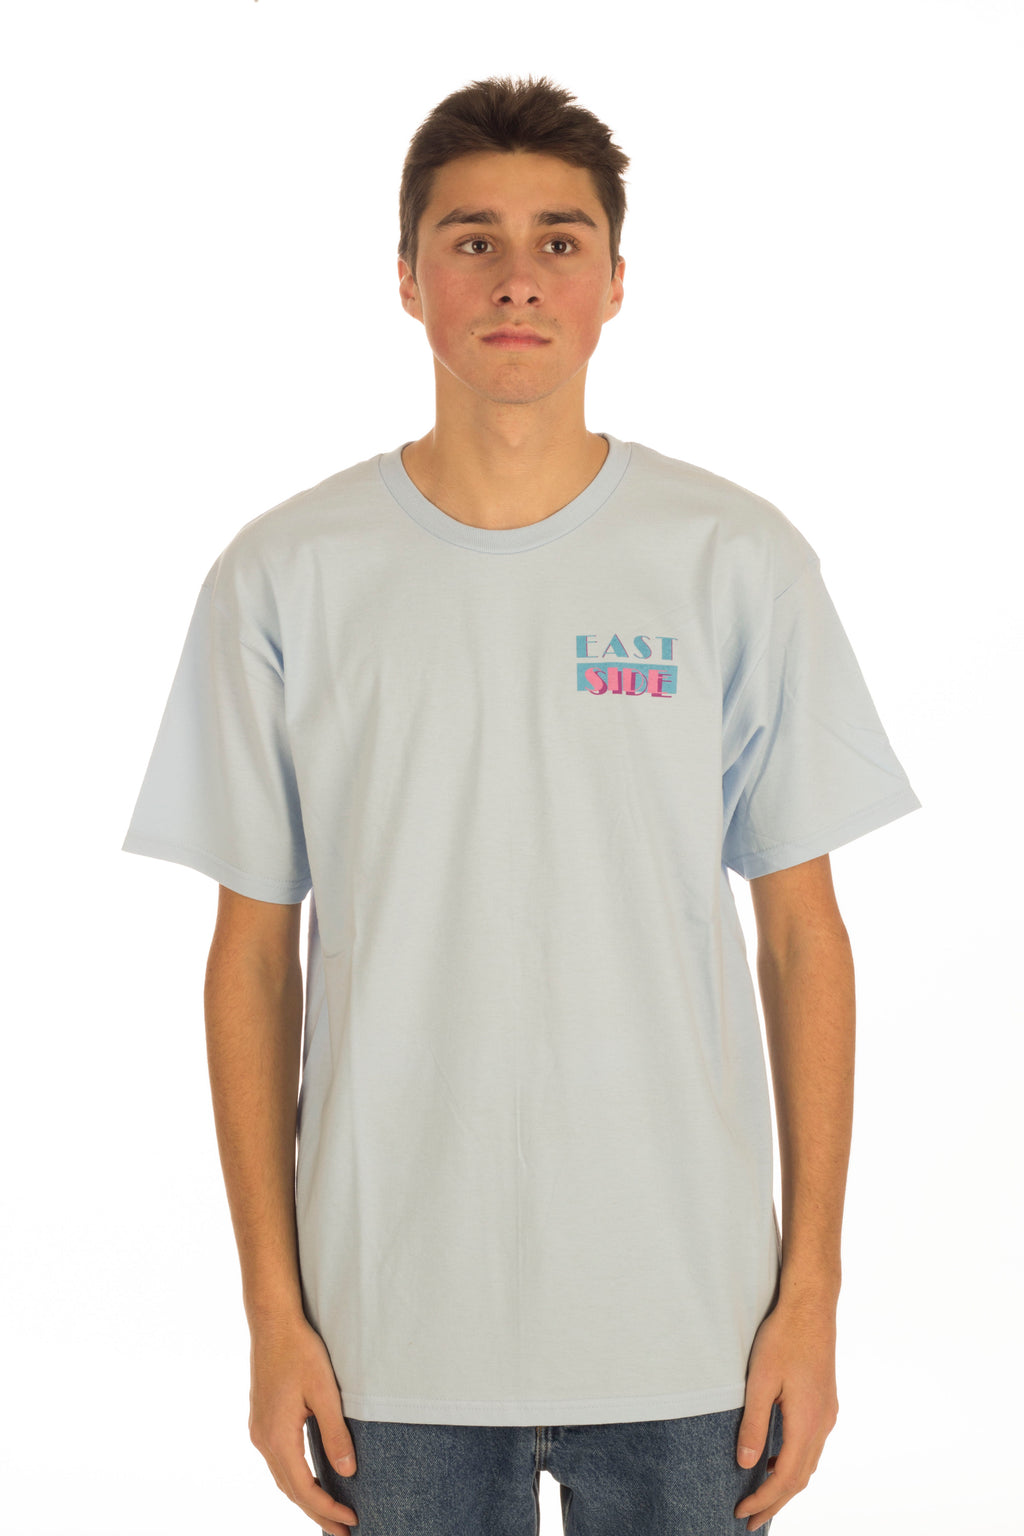 East Side Vice Tee